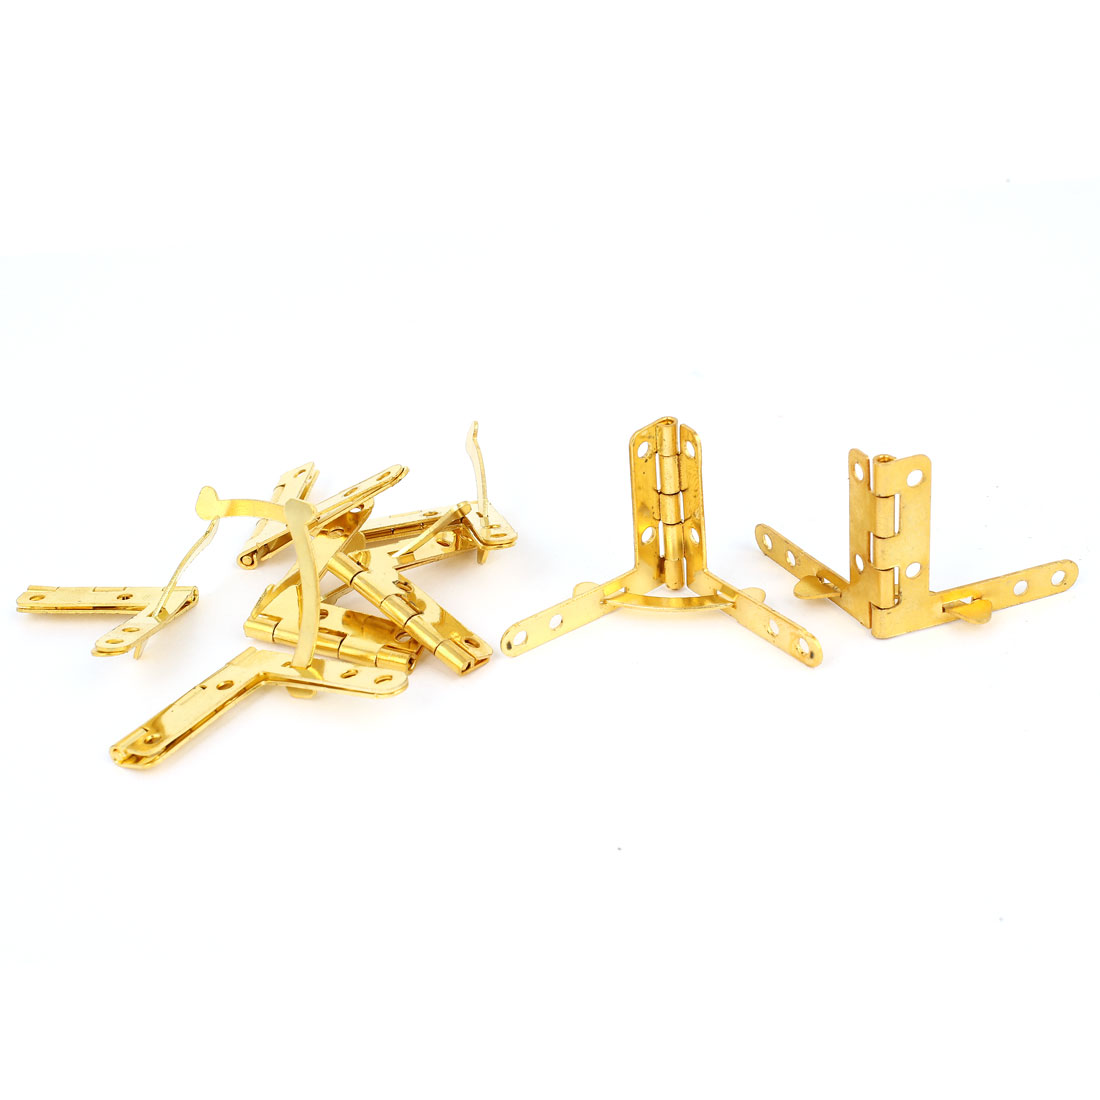 8 Pcs Gold Tone Foldable Cupboard Cabinet Window Drawer Gate Door Corner Butt Hinges w Screws